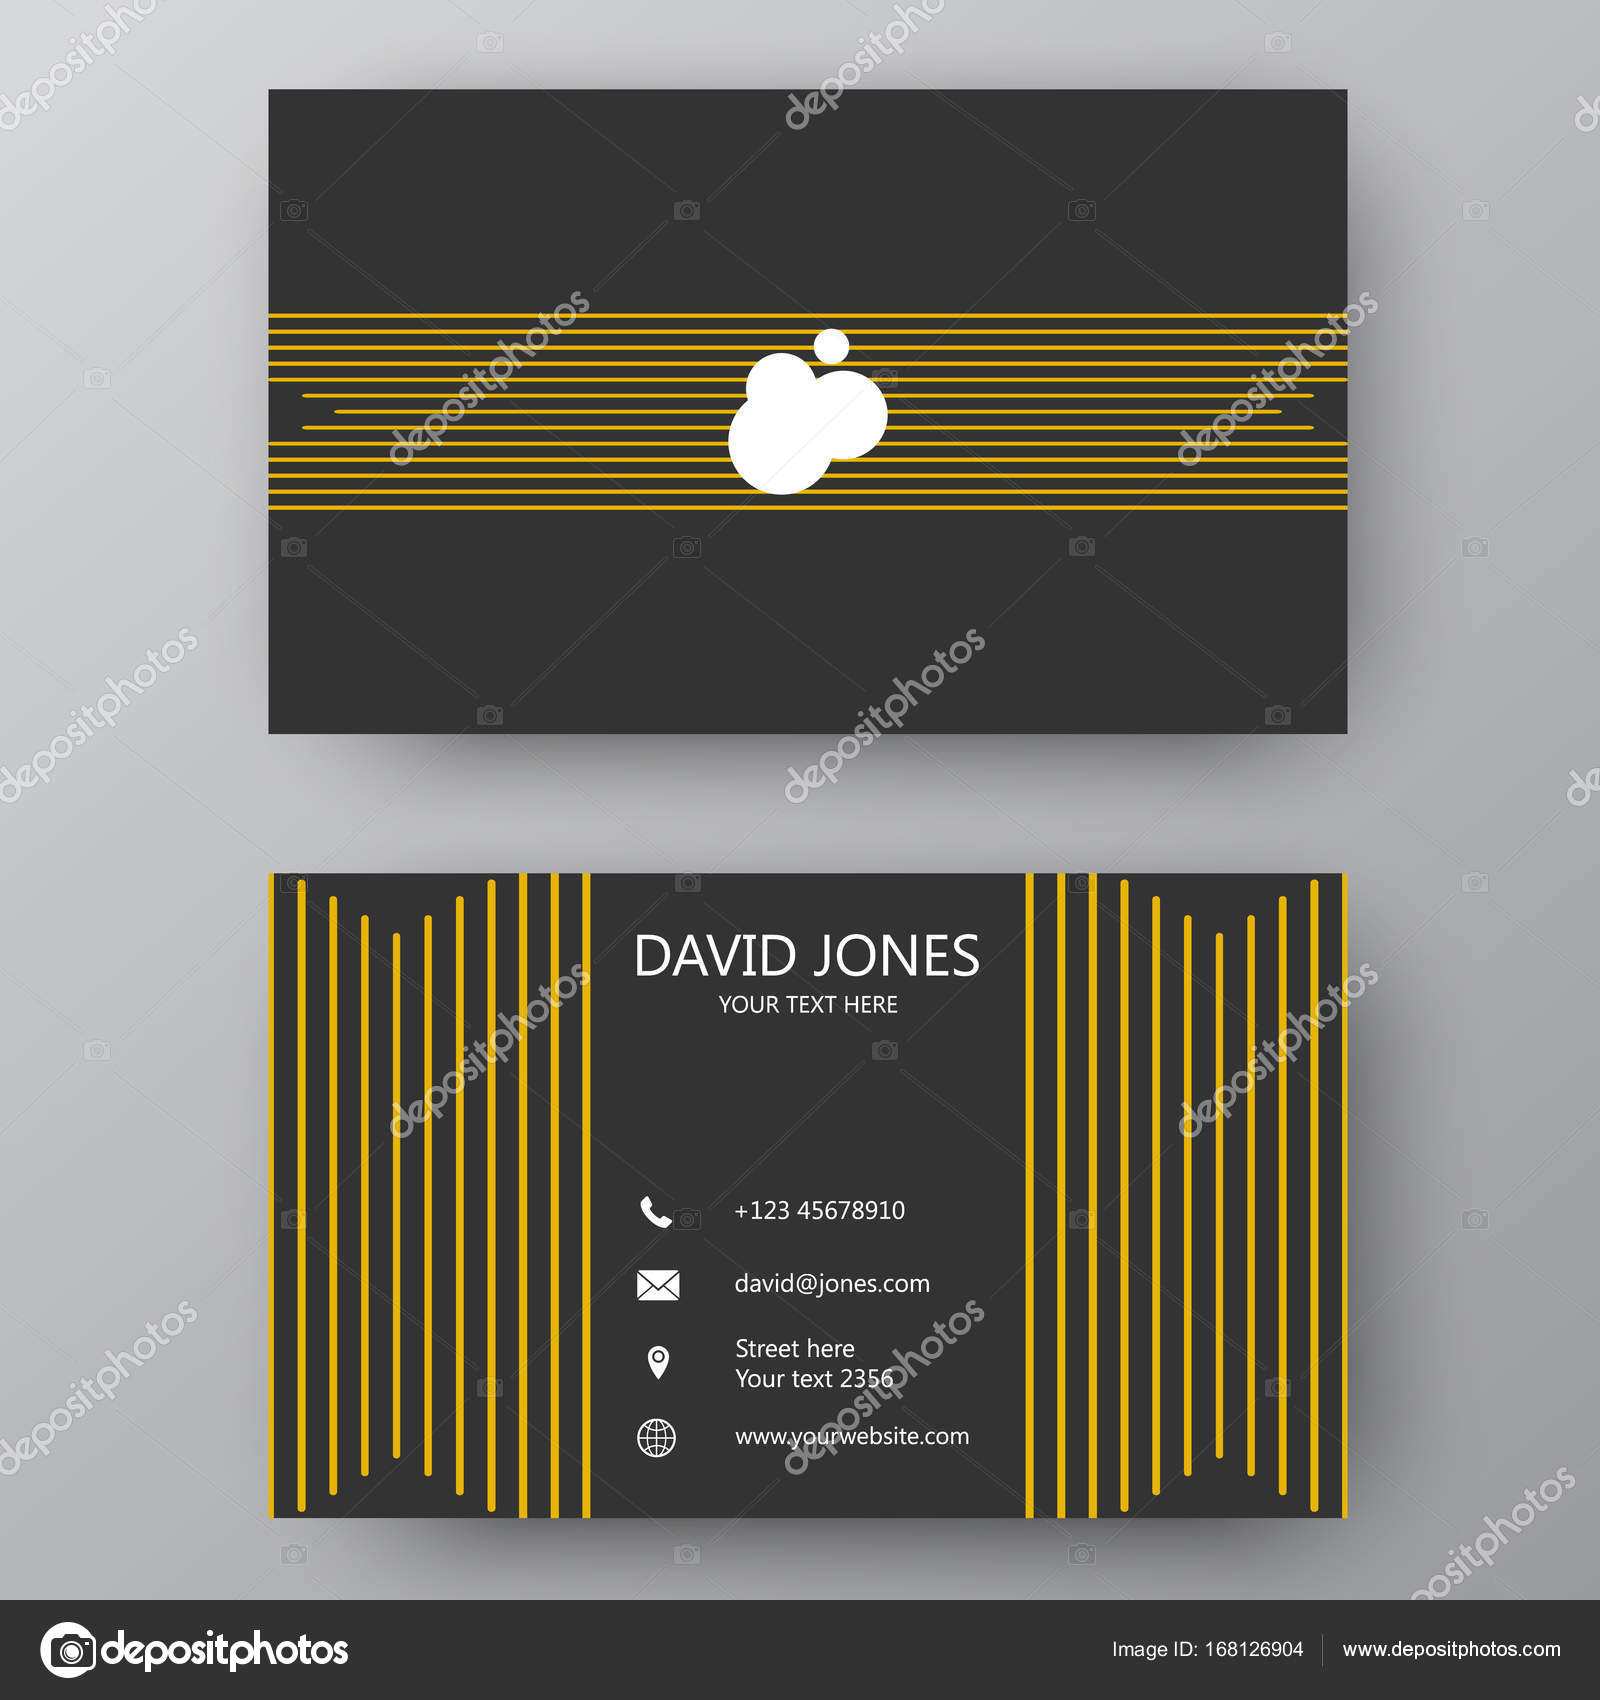 Modern presentation card with company logo vector business card vector business card template visiting card for business and personal use modern presentation card with company logo vector illustration design magicingreecefo Image collections